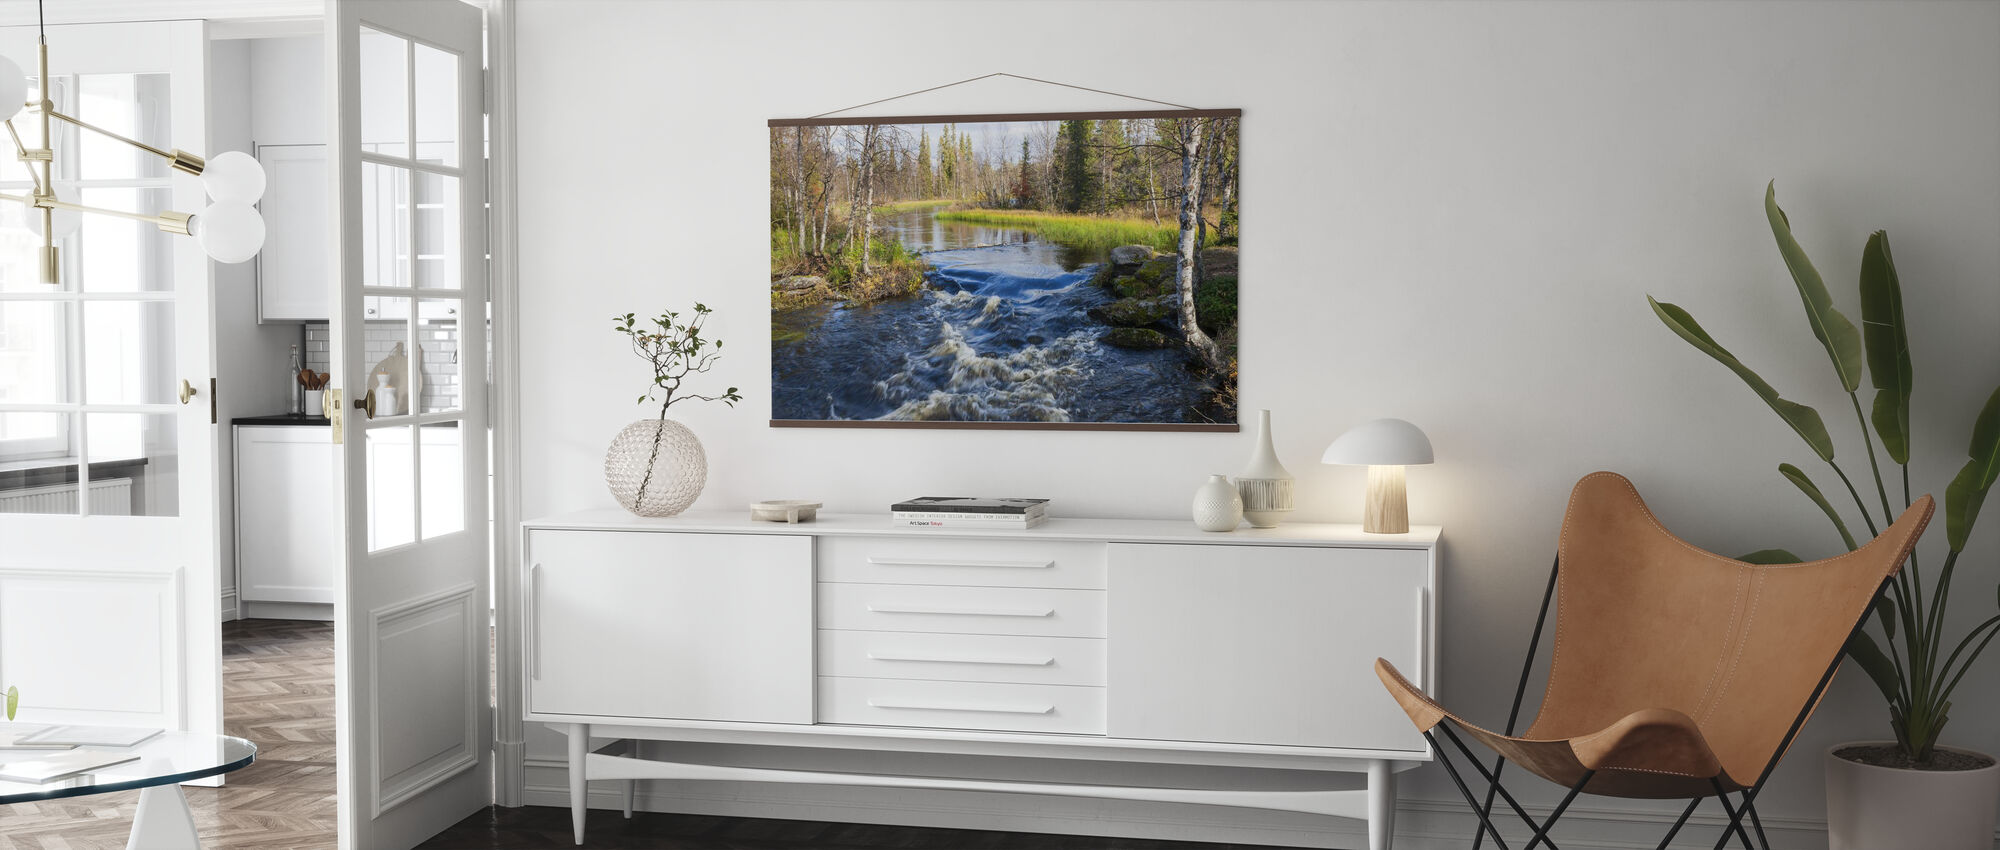 Lapland River - Poster - Living Room